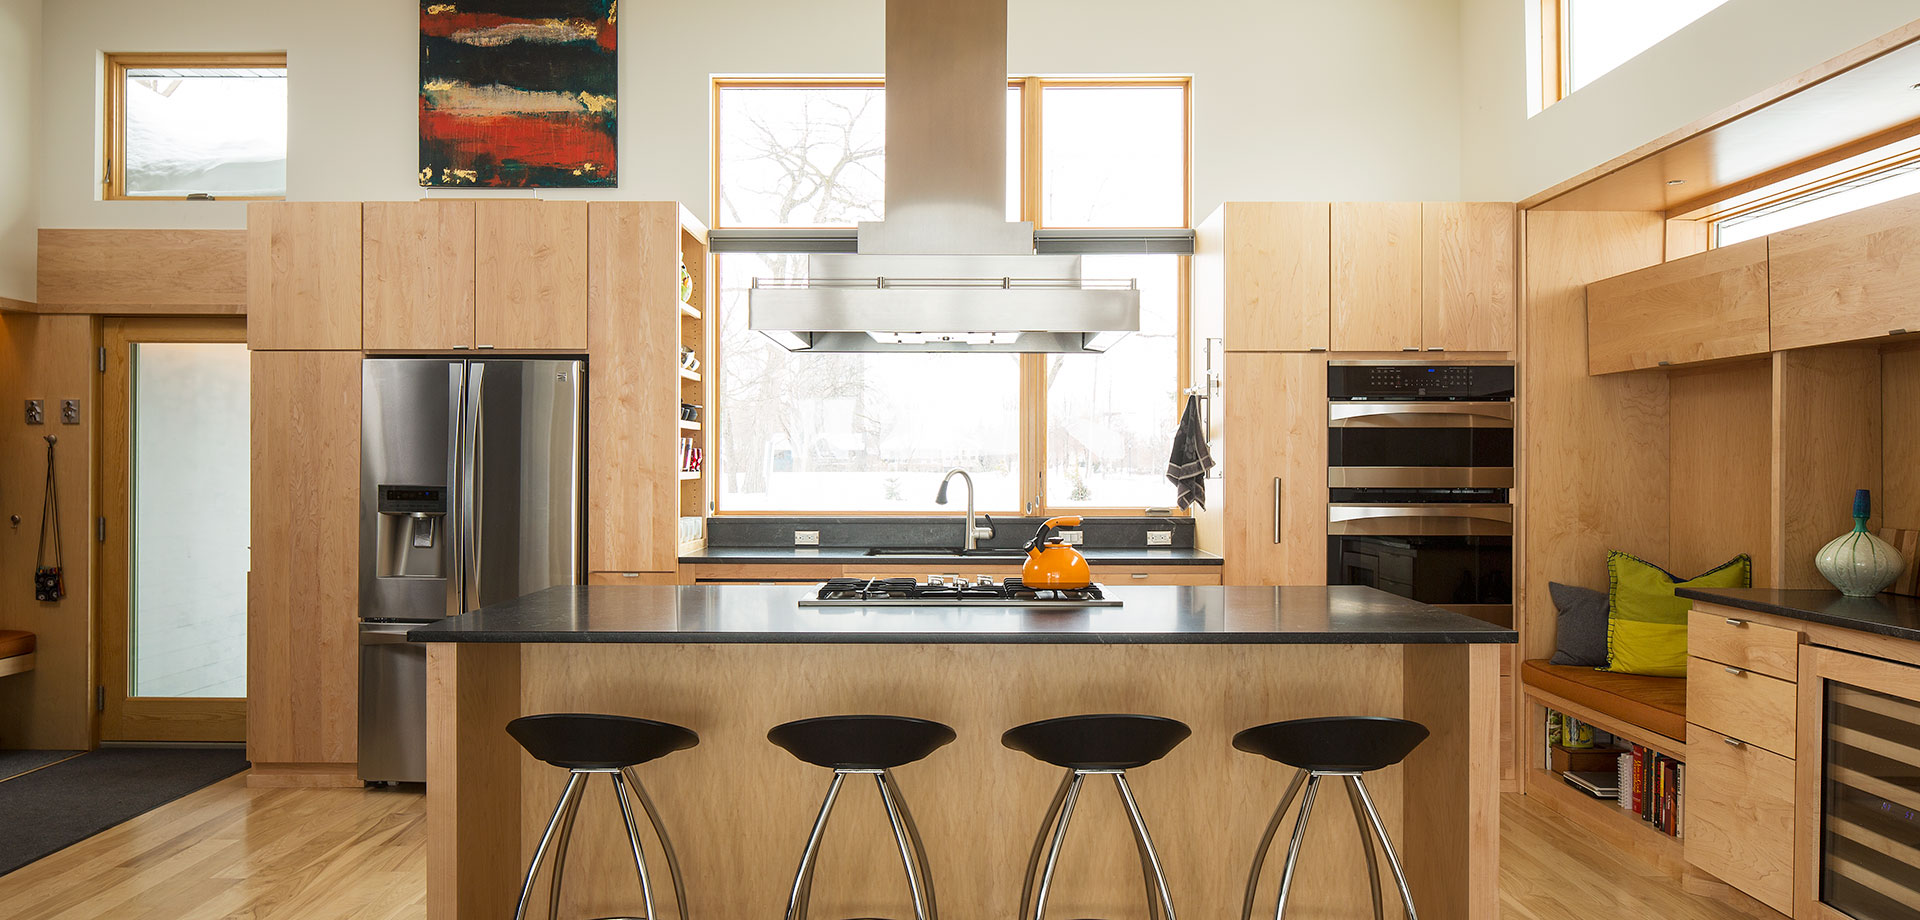 Minnesota Residential and Commercial Architecture - SALA Architects